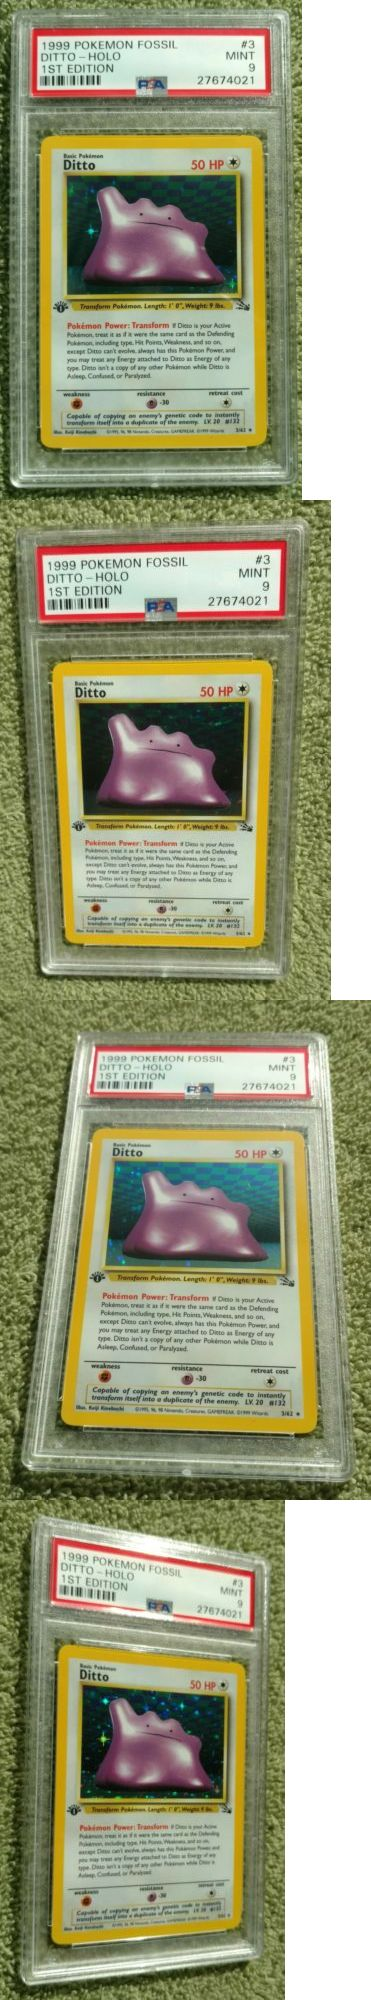 Pok mon Individual Cards 2611: Psa 9 Mint Ditto 3 62 1St Edition Holo Rare 1999 Wizards Fossil Set Pokemon -> BUY IT NOW ONLY: $35 on eBay!